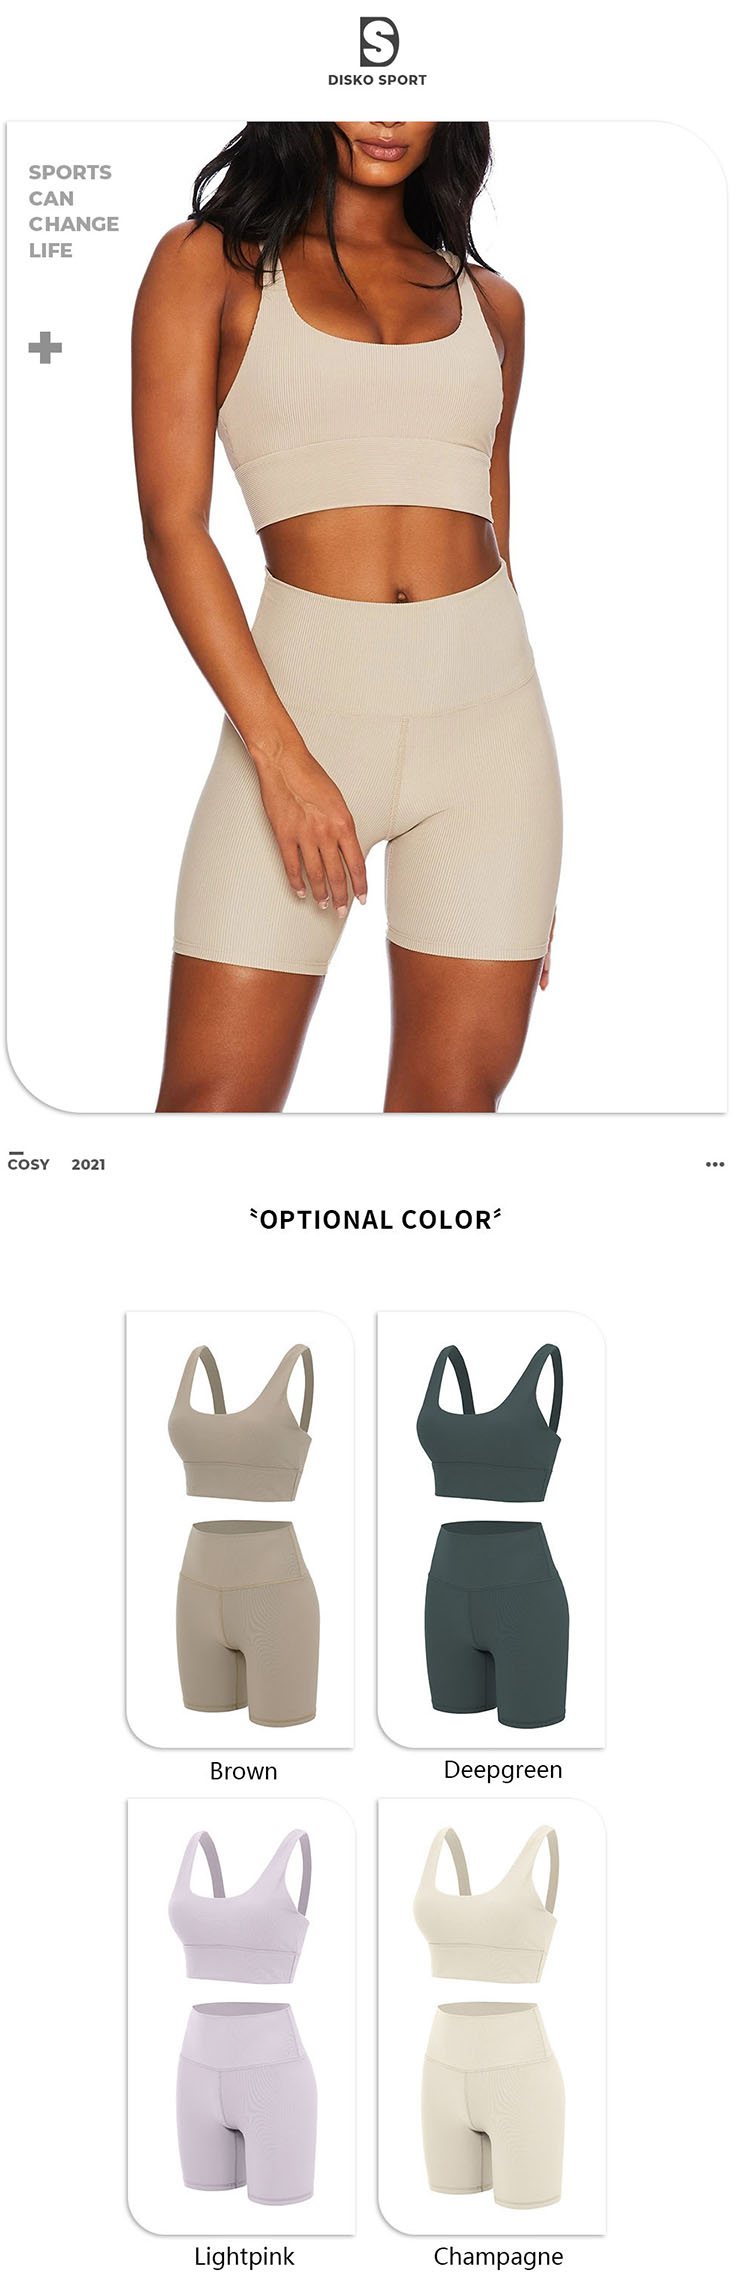 Cropped yoga pants is very commercially and consumed by consumer